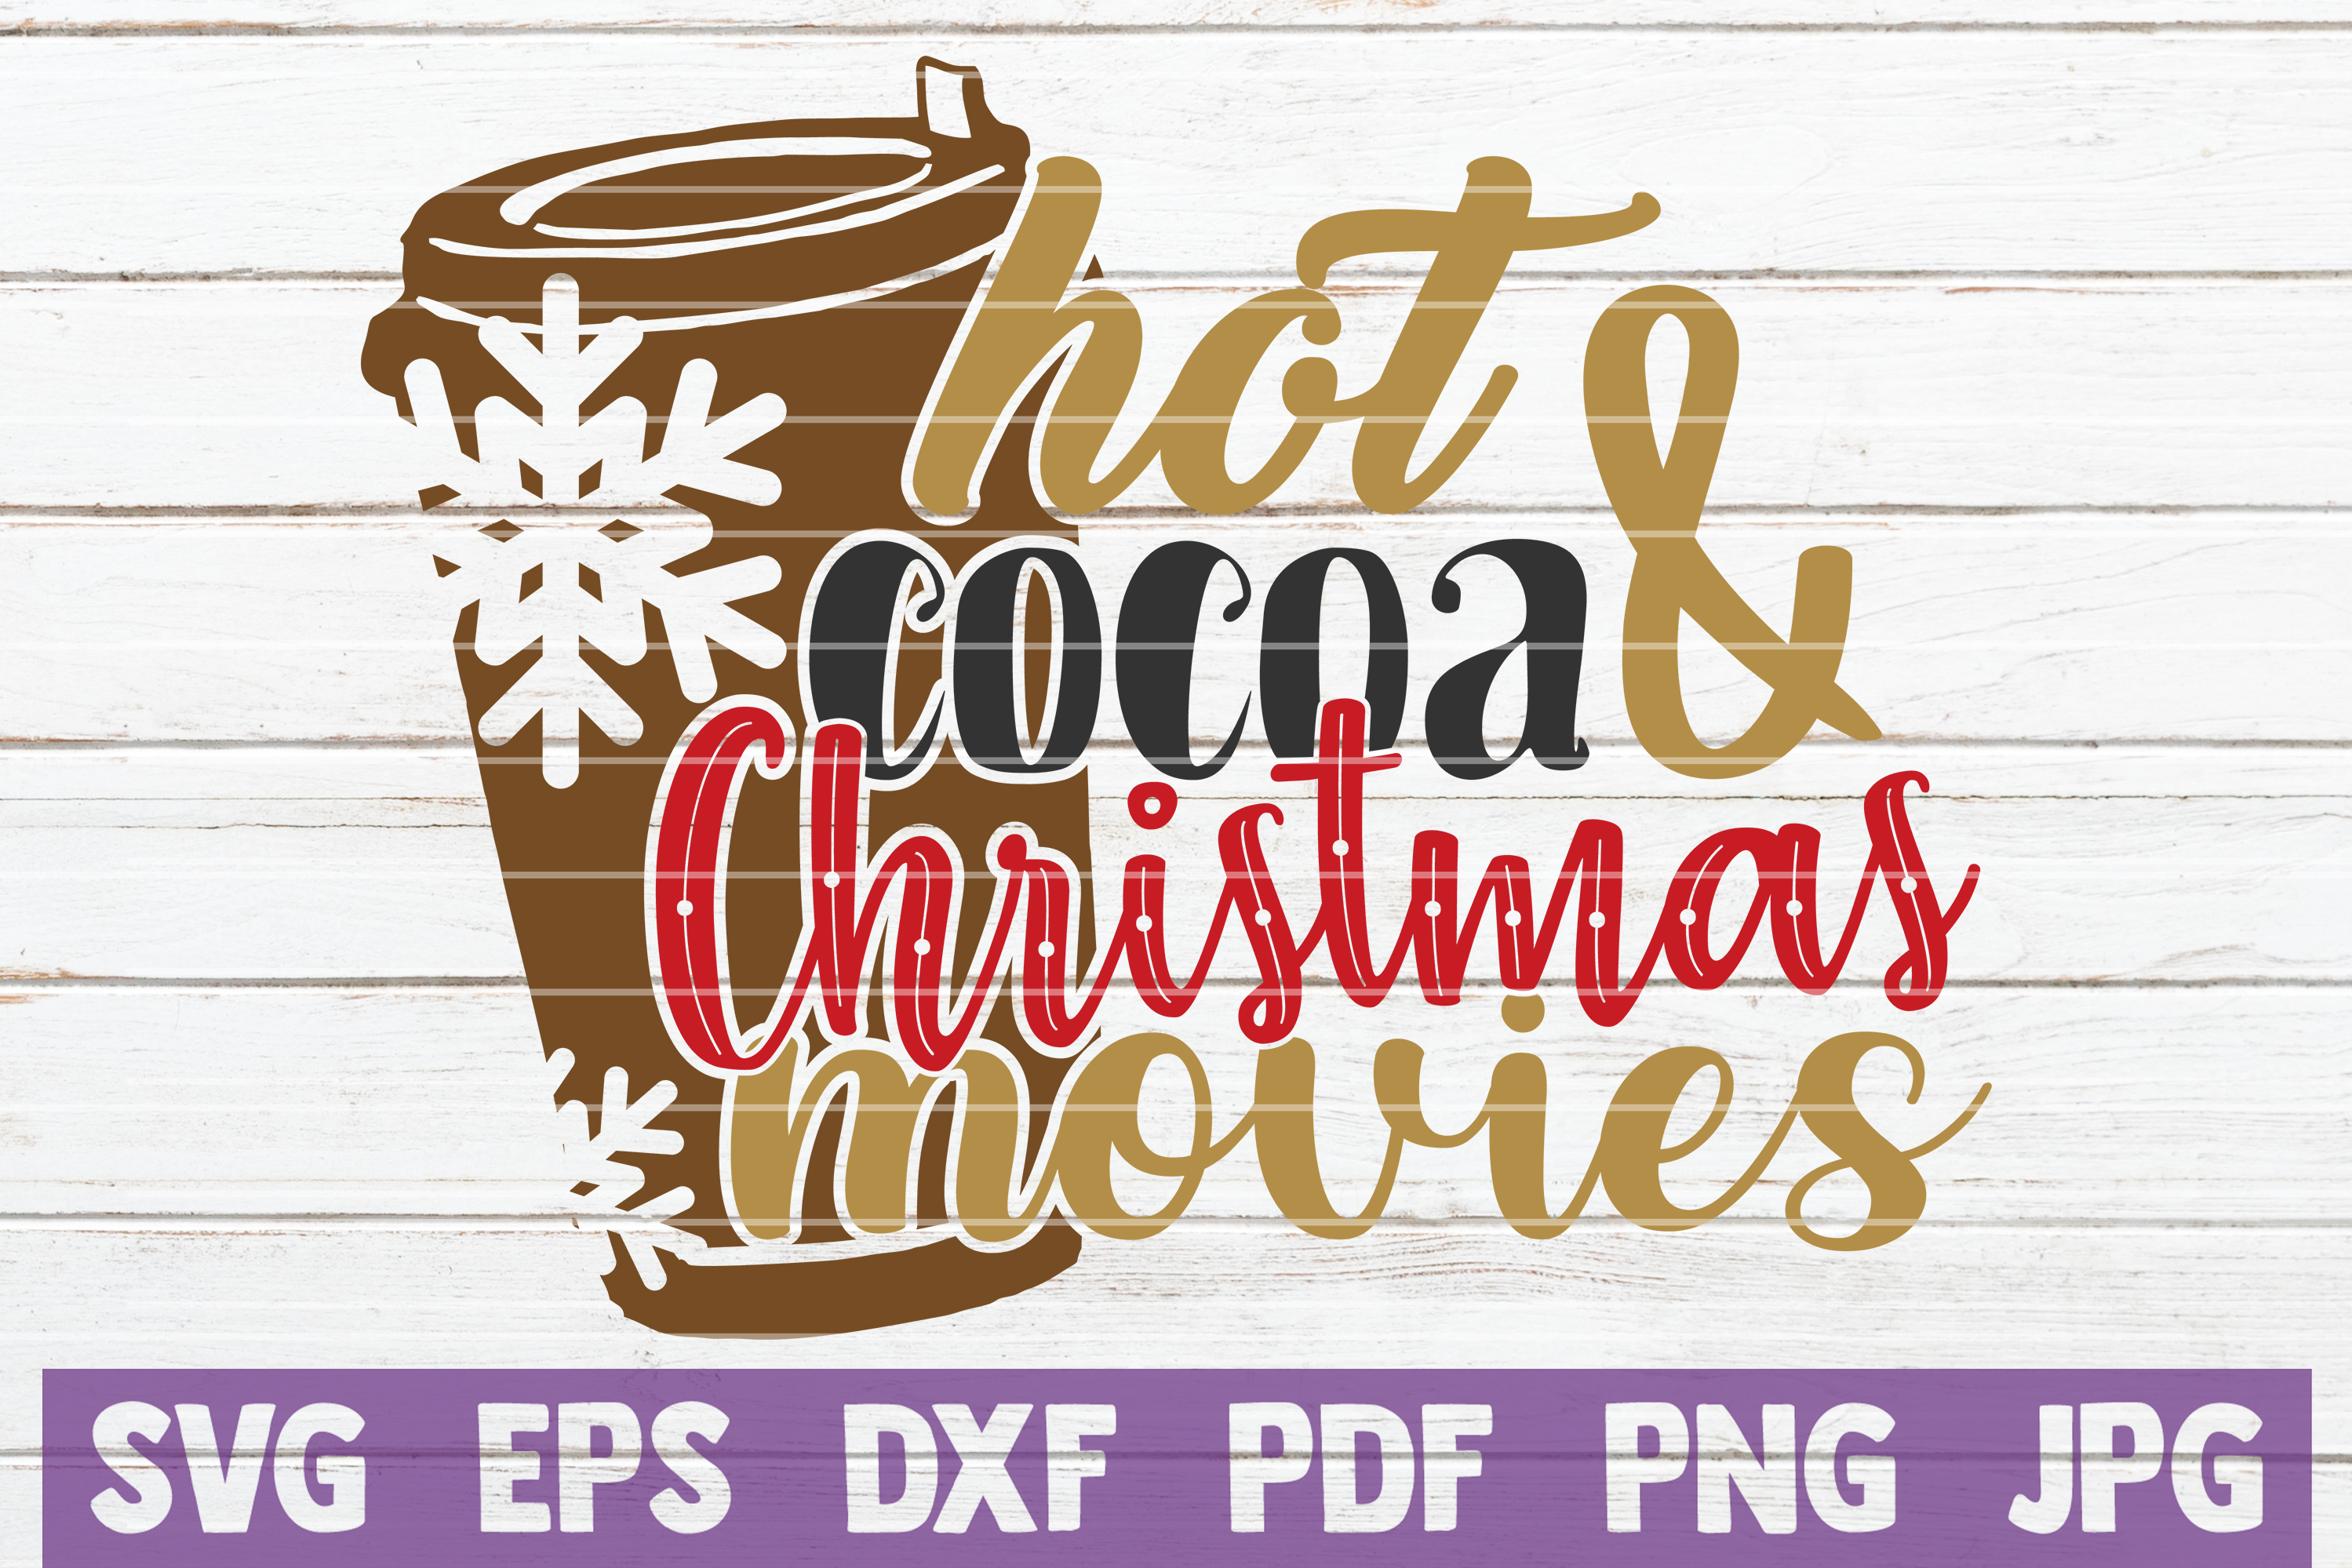 Download Free Hot Cocoa And Christmas Movies Graphic By Mintymarshmallows for Cricut Explore, Silhouette and other cutting machines.